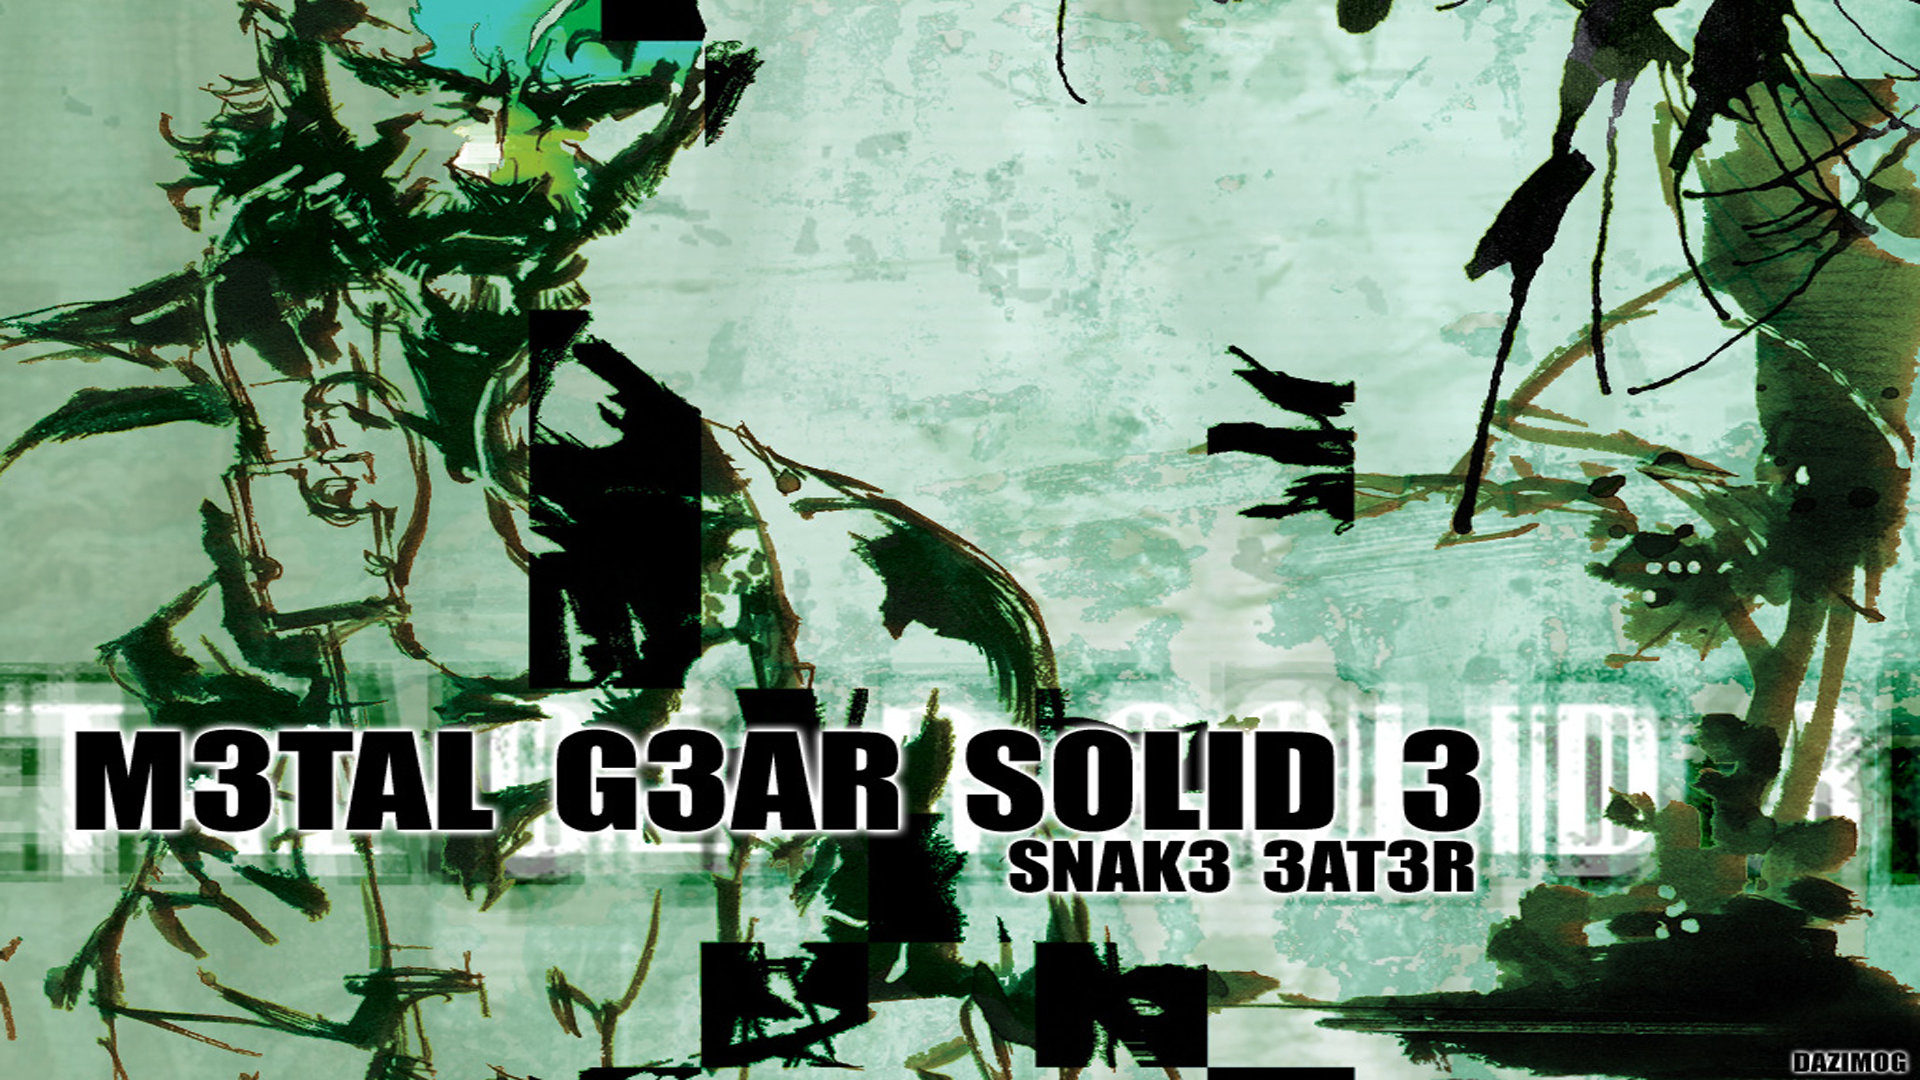 Download Full Hd 1920x1080 Metal Gear Solid 3 Snake Eater Mgs 3